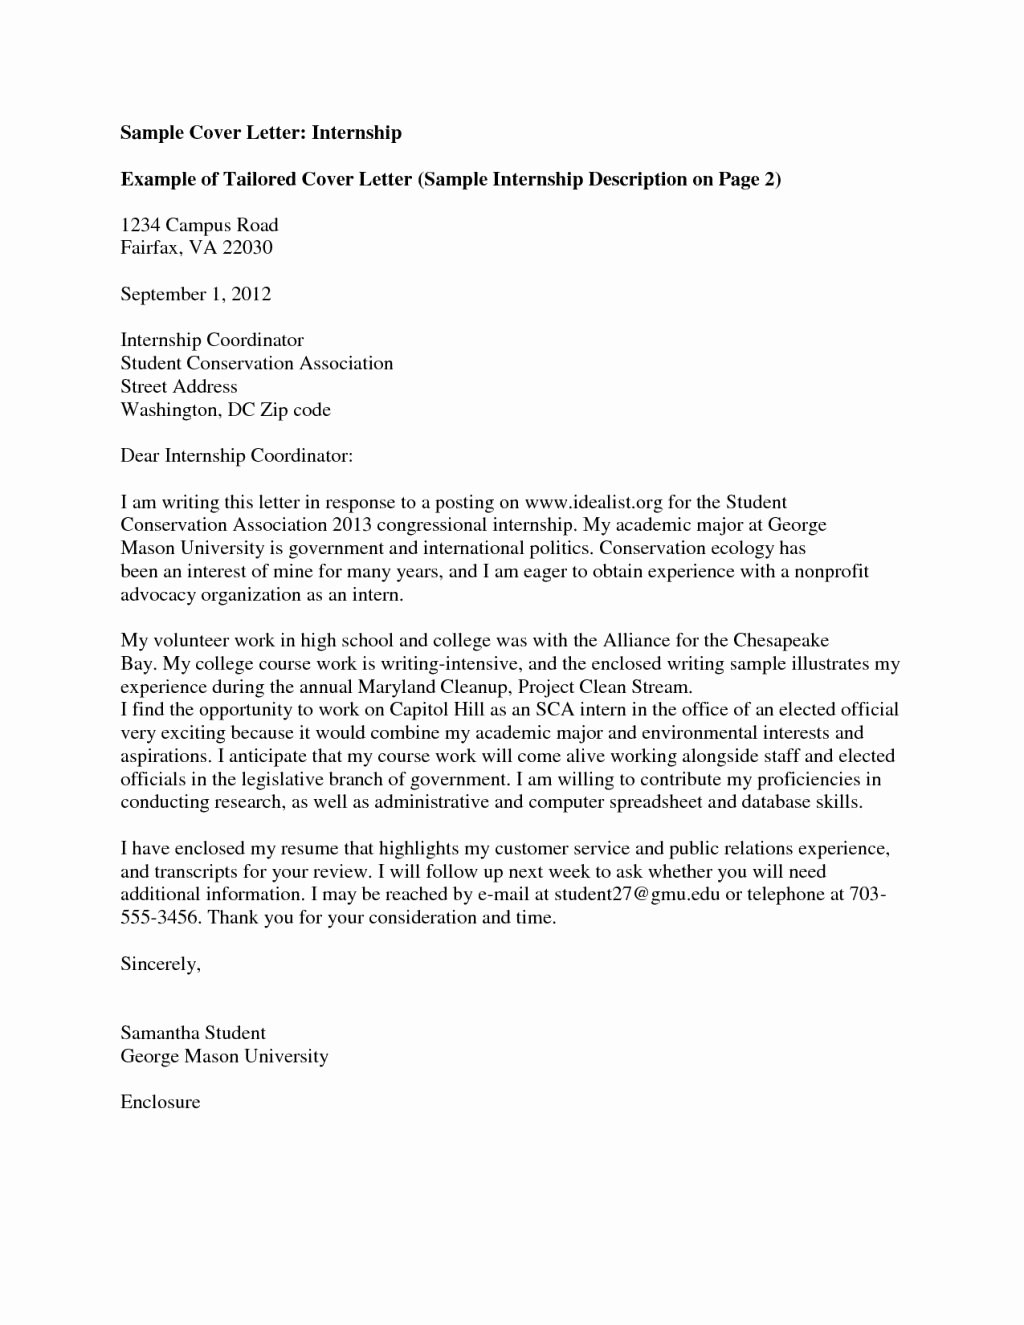 Goodly Example Cover Letter for Internship – Letter format